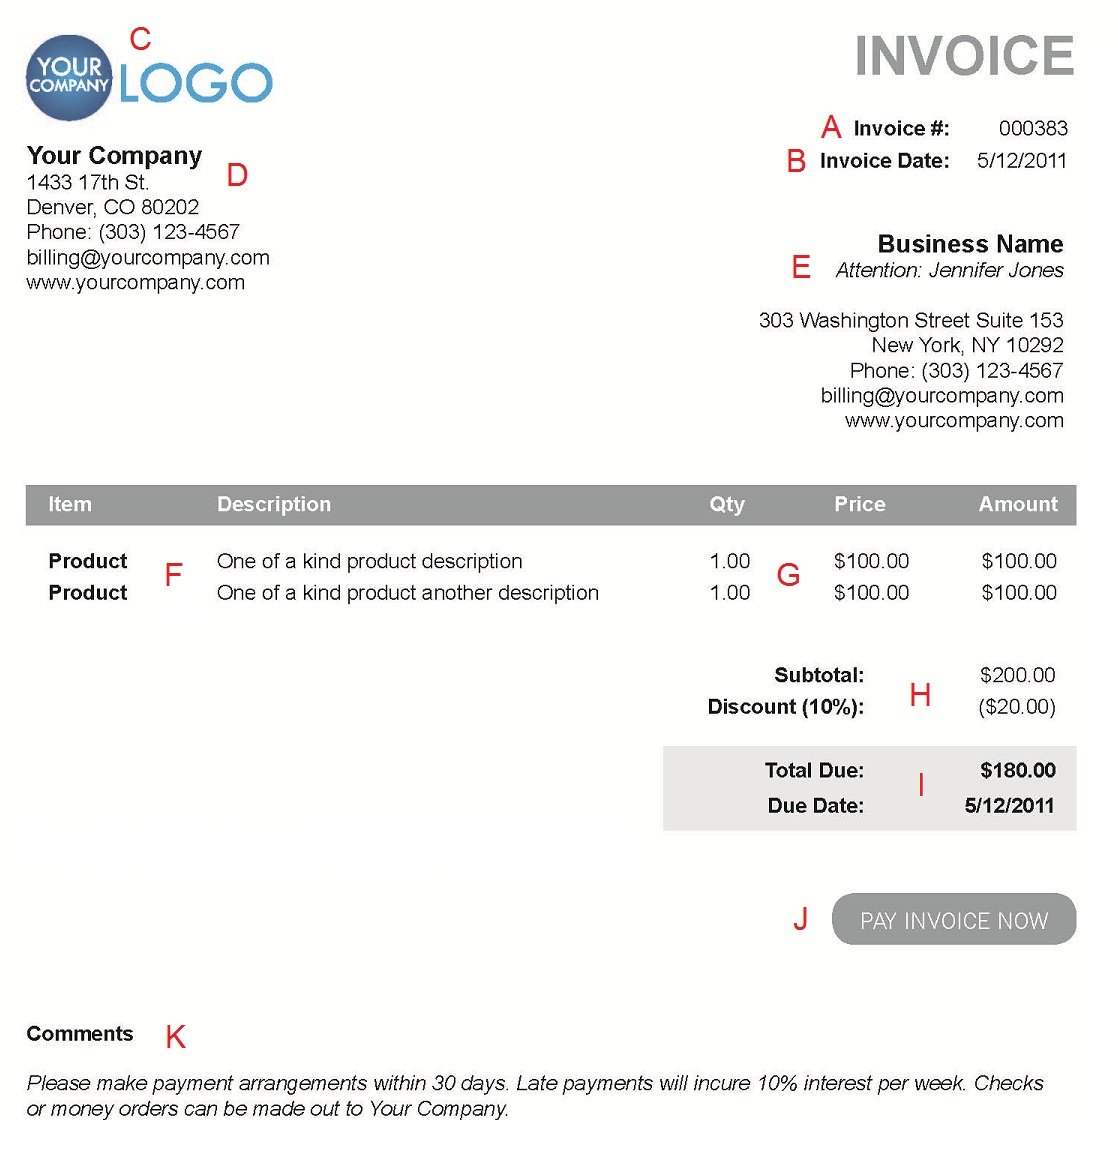 Pigbrotherus  Unusual The  Different Sections Of An Electronic Payment Invoice With Remarkable A  With Nice Invoice Template Google Drive Also Is An Invoice A Bill In Addition Google Adwords Invoice And Sending An Invoice On Ebay As Well As Enterprise Invoice Additionally Car Invoice Vs Msrp From Paysimplecom With Pigbrotherus  Remarkable The  Different Sections Of An Electronic Payment Invoice With Nice A  And Unusual Invoice Template Google Drive Also Is An Invoice A Bill In Addition Google Adwords Invoice From Paysimplecom